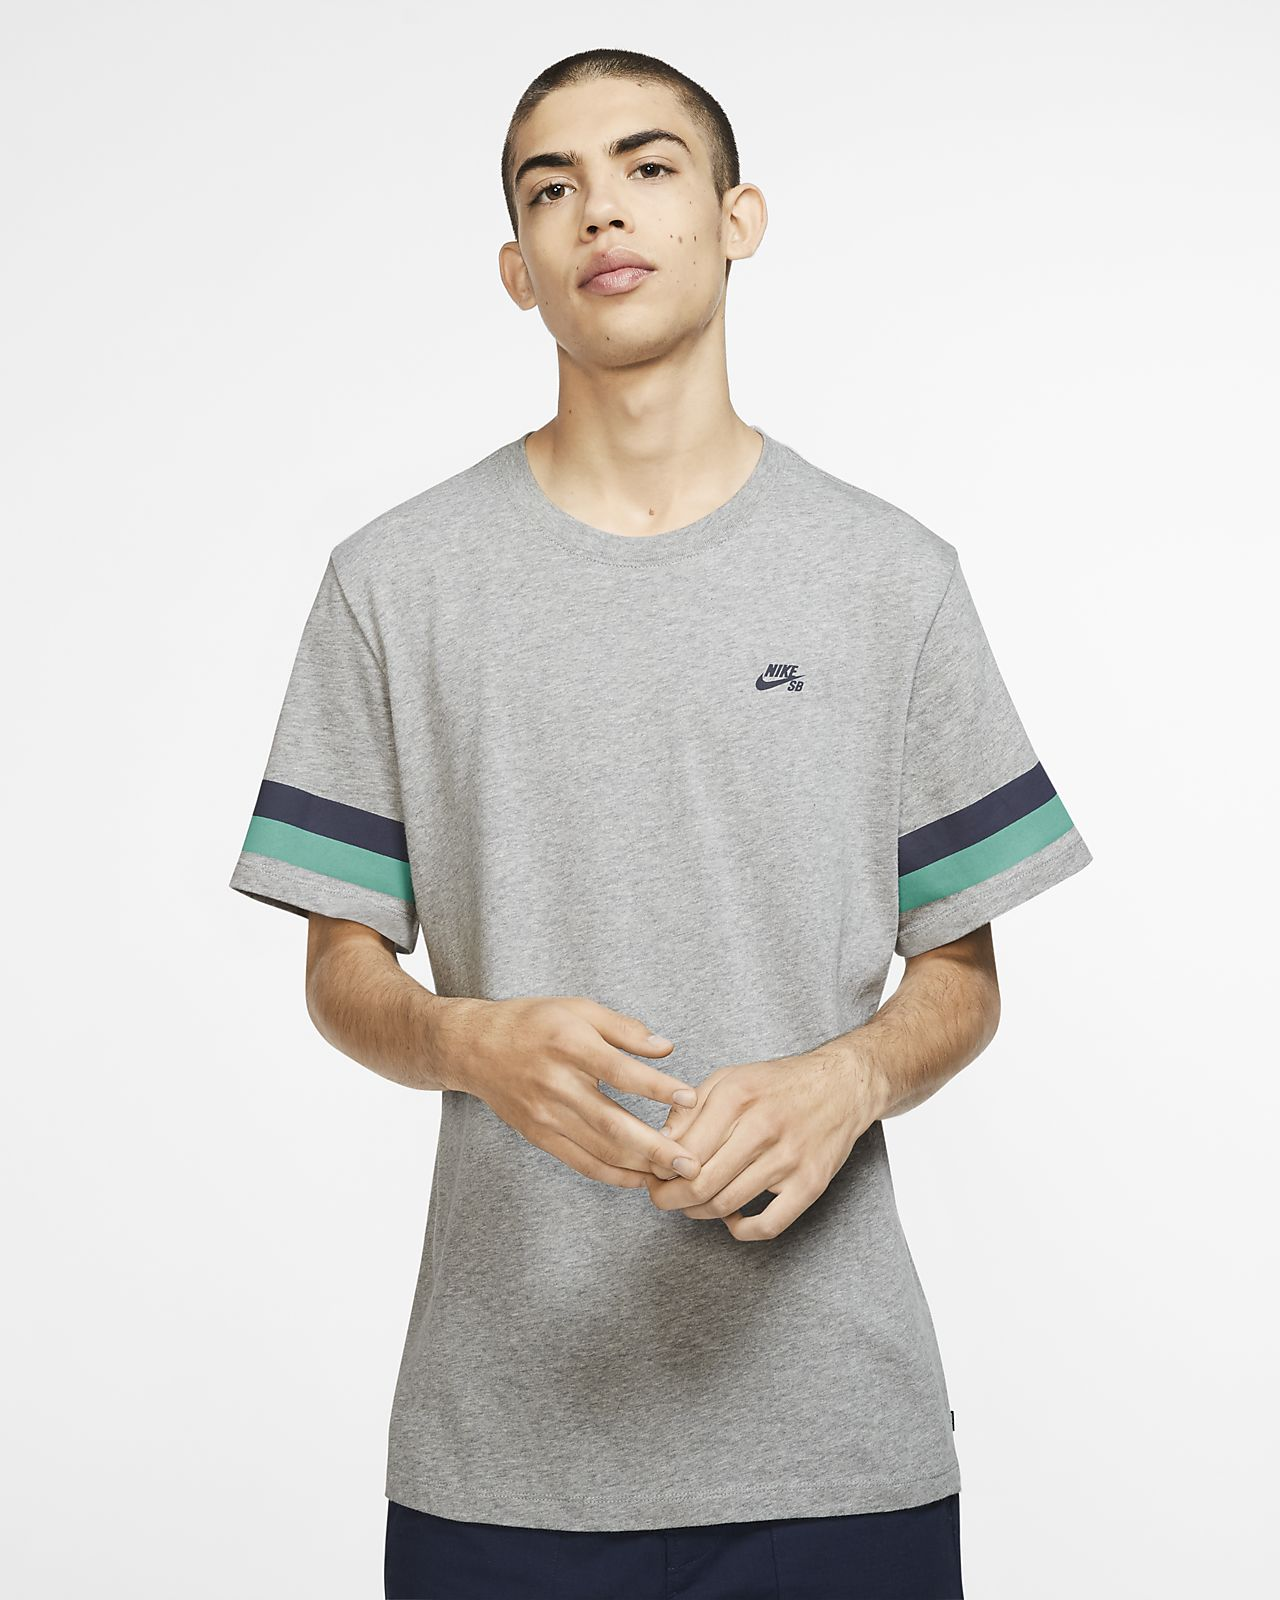 c50bf0ad Nike SB Men's Striped Skate T-Shirt. Nike.com GB